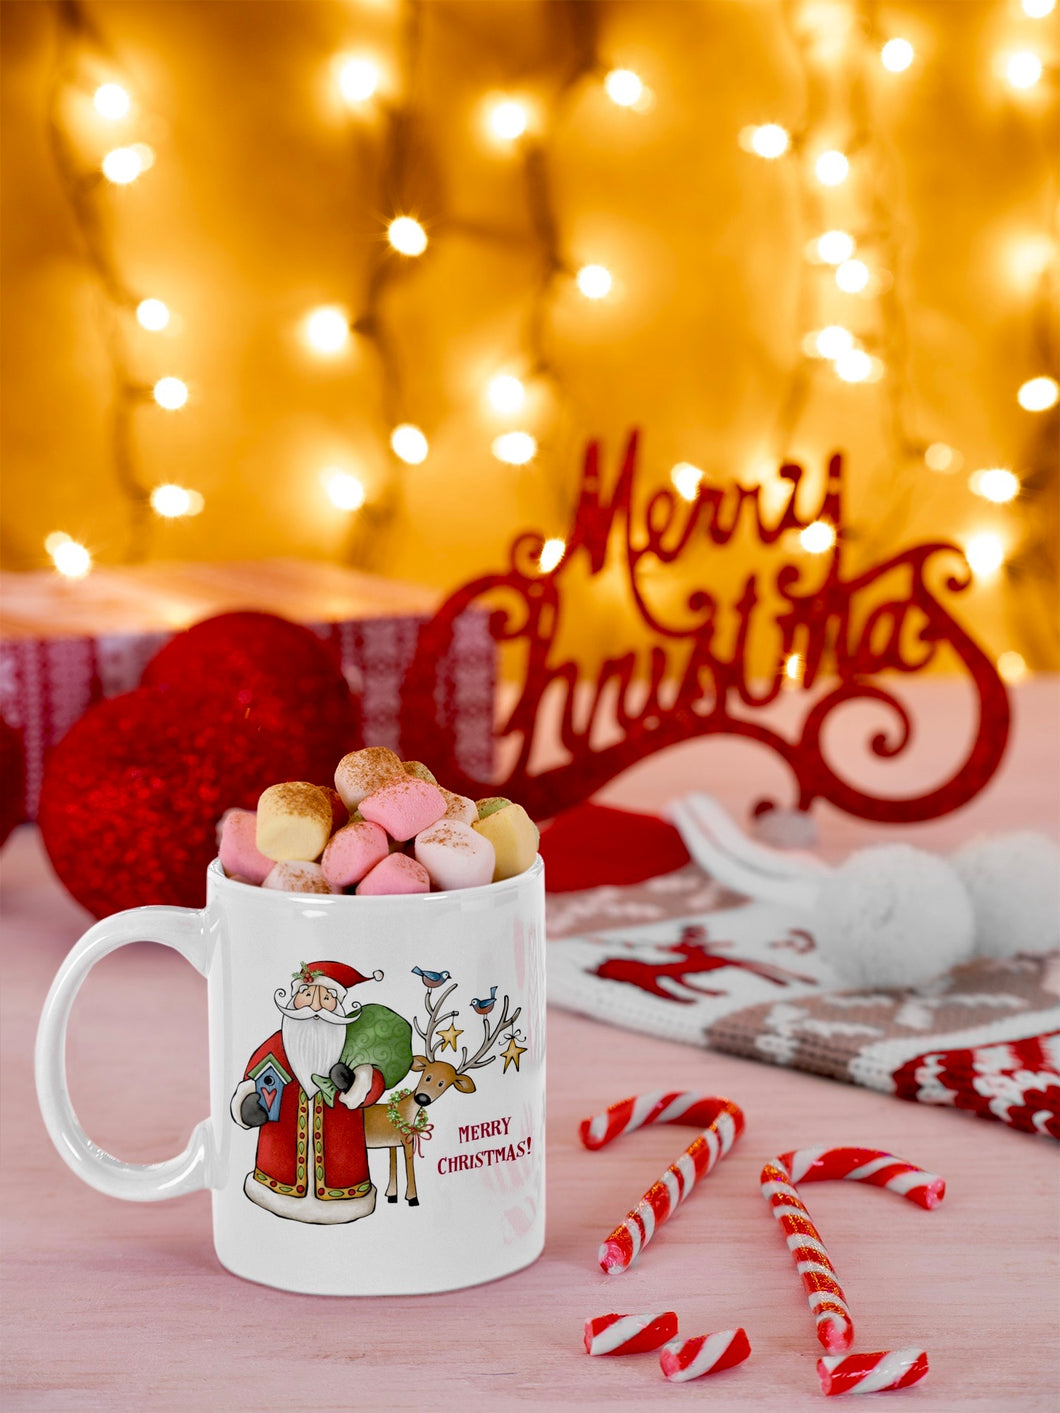 Merry Christmas Santa Ceramic Mug